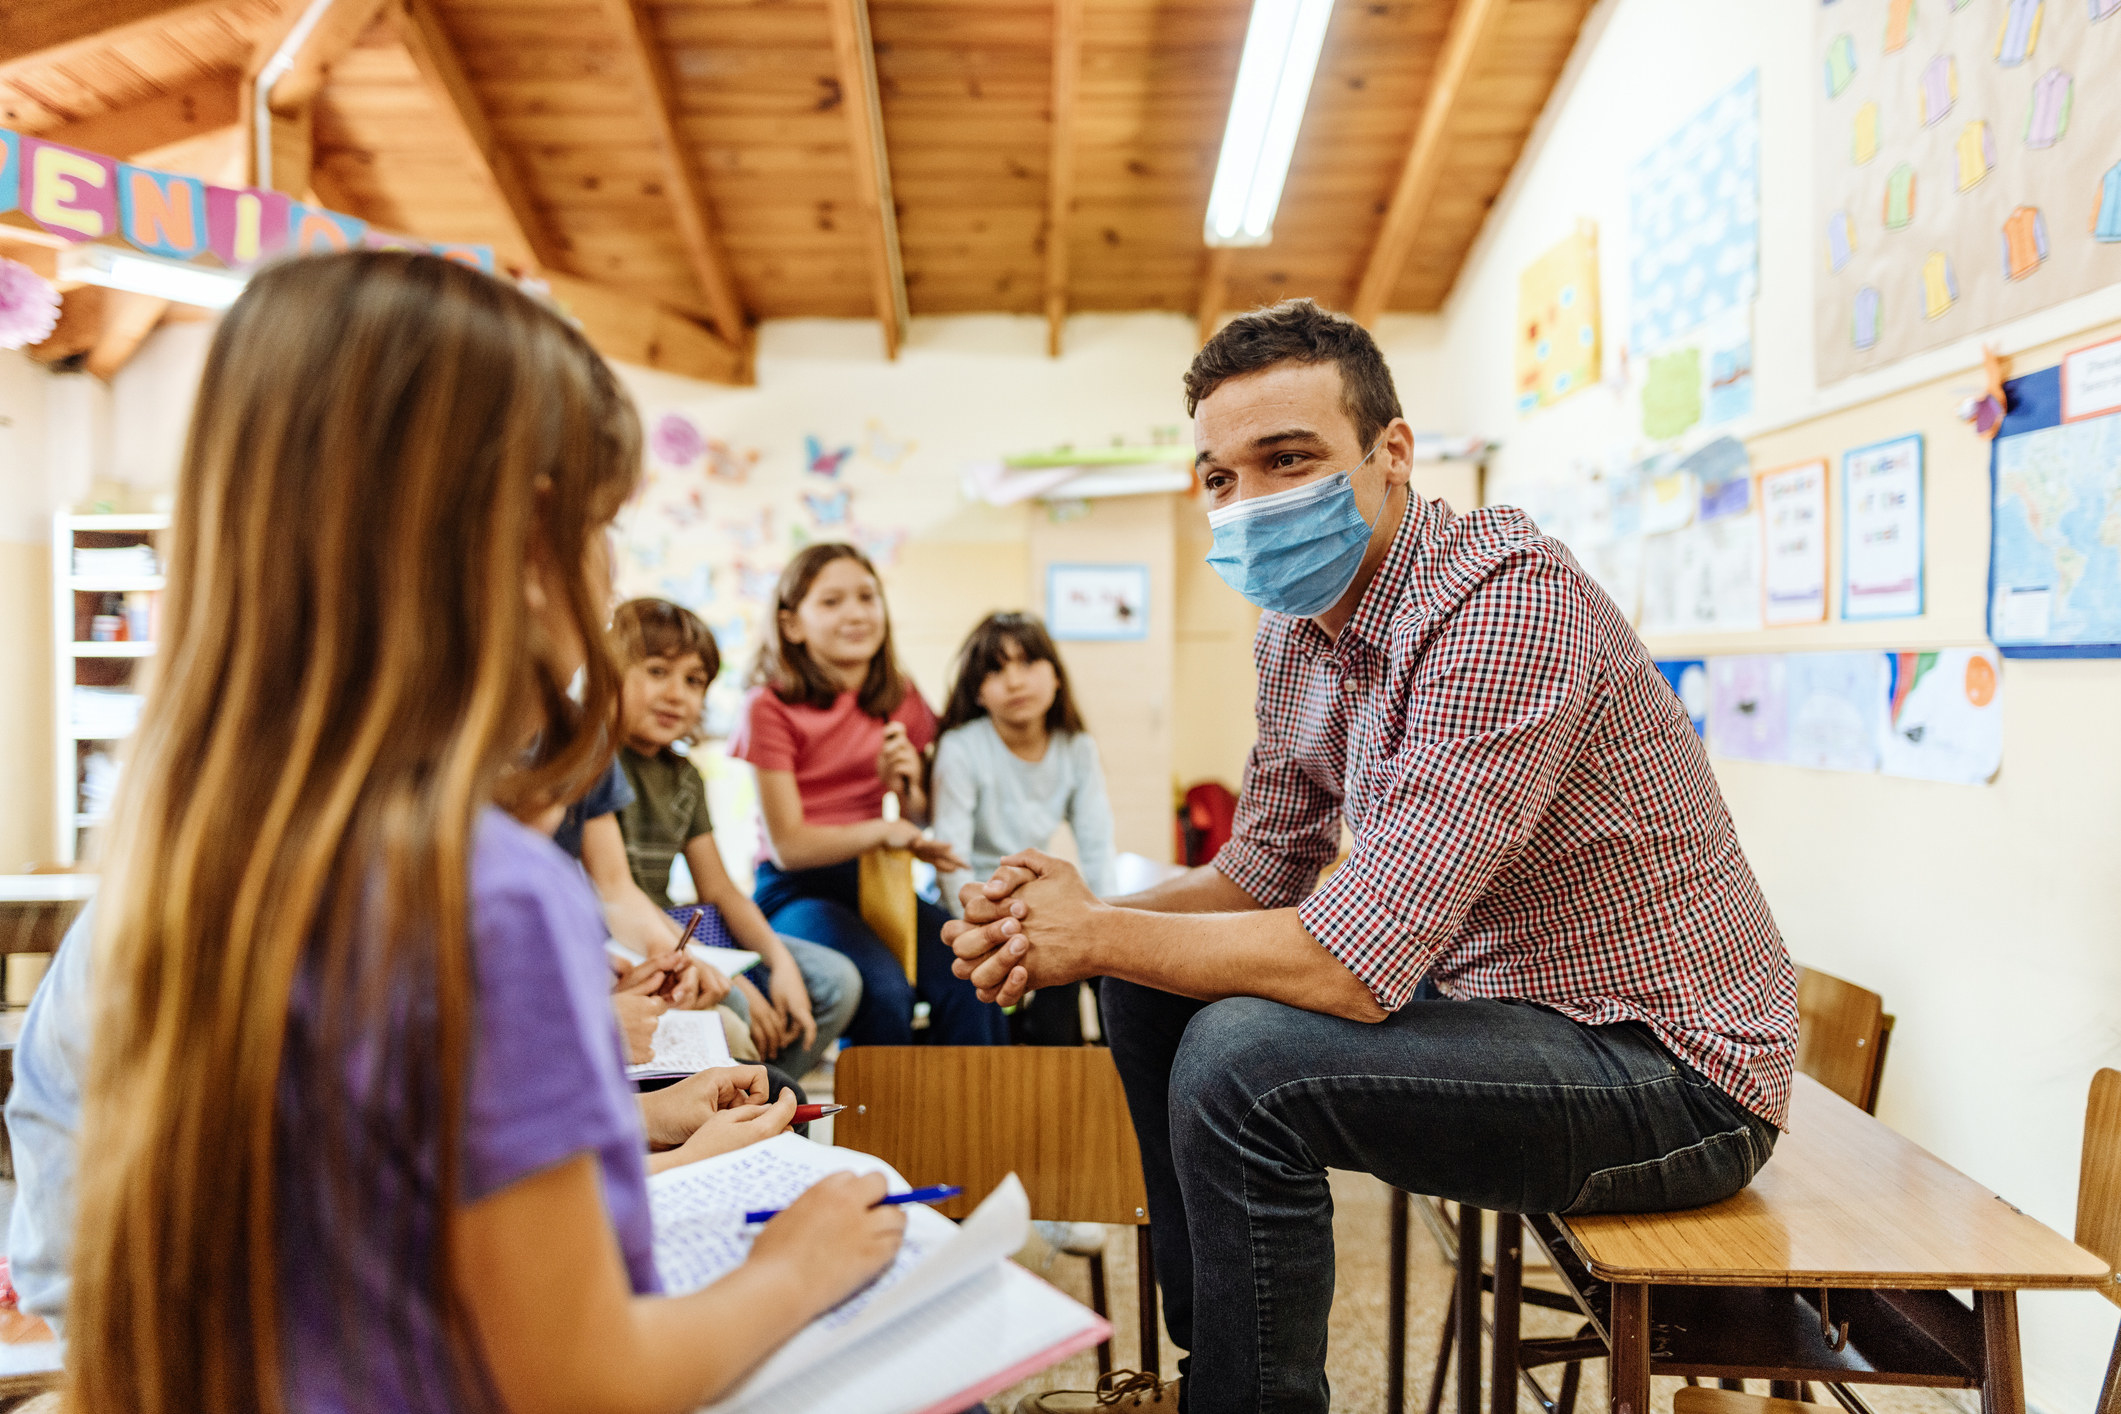 A teacher sitting on top of a desk, wearing a mask, and talking to his students